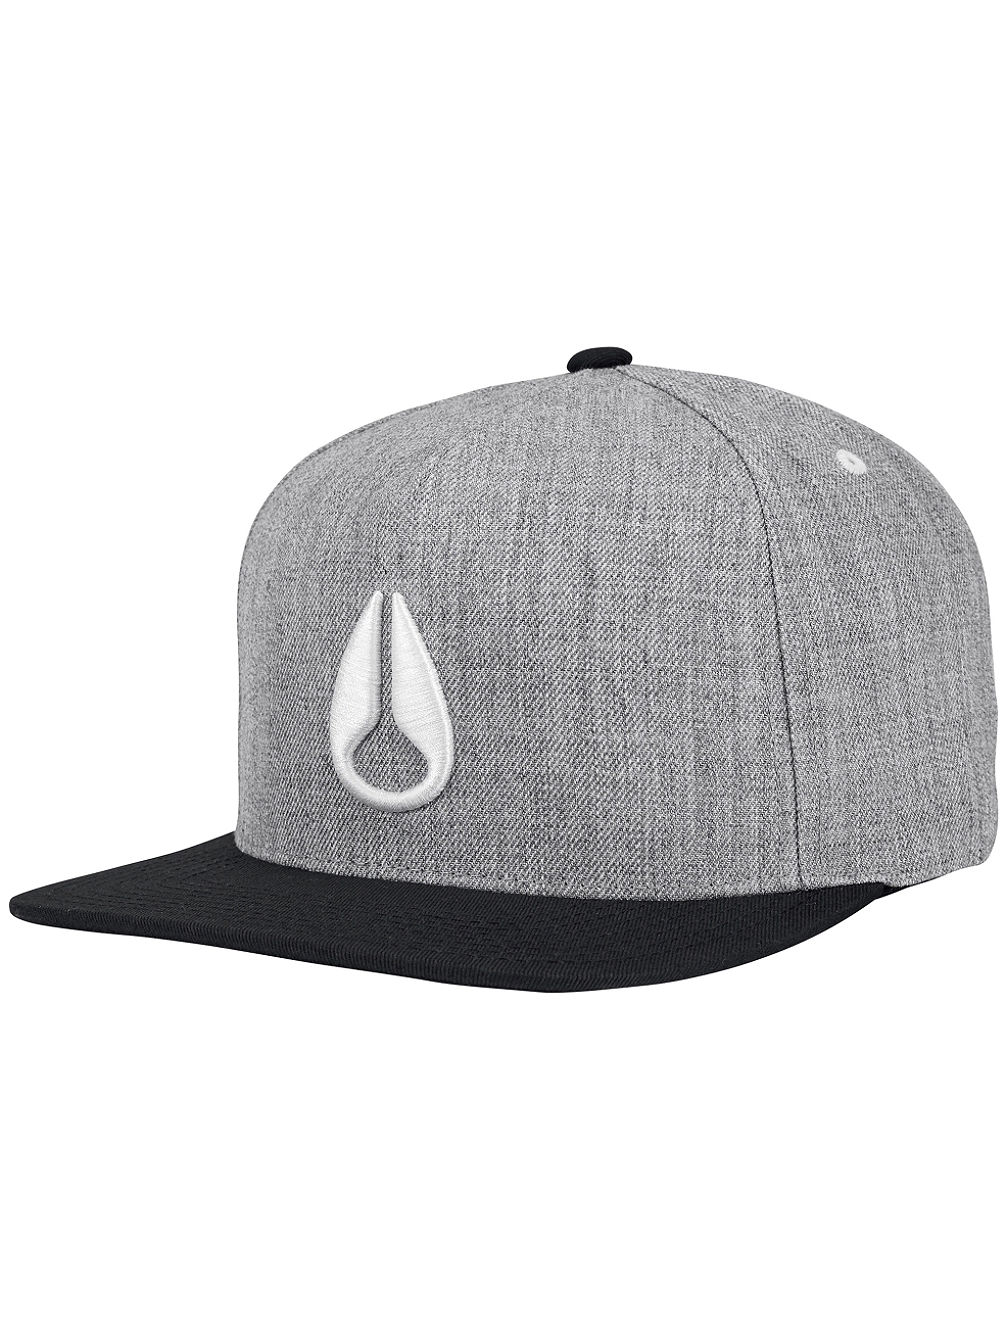 Simon Snap Back Cap